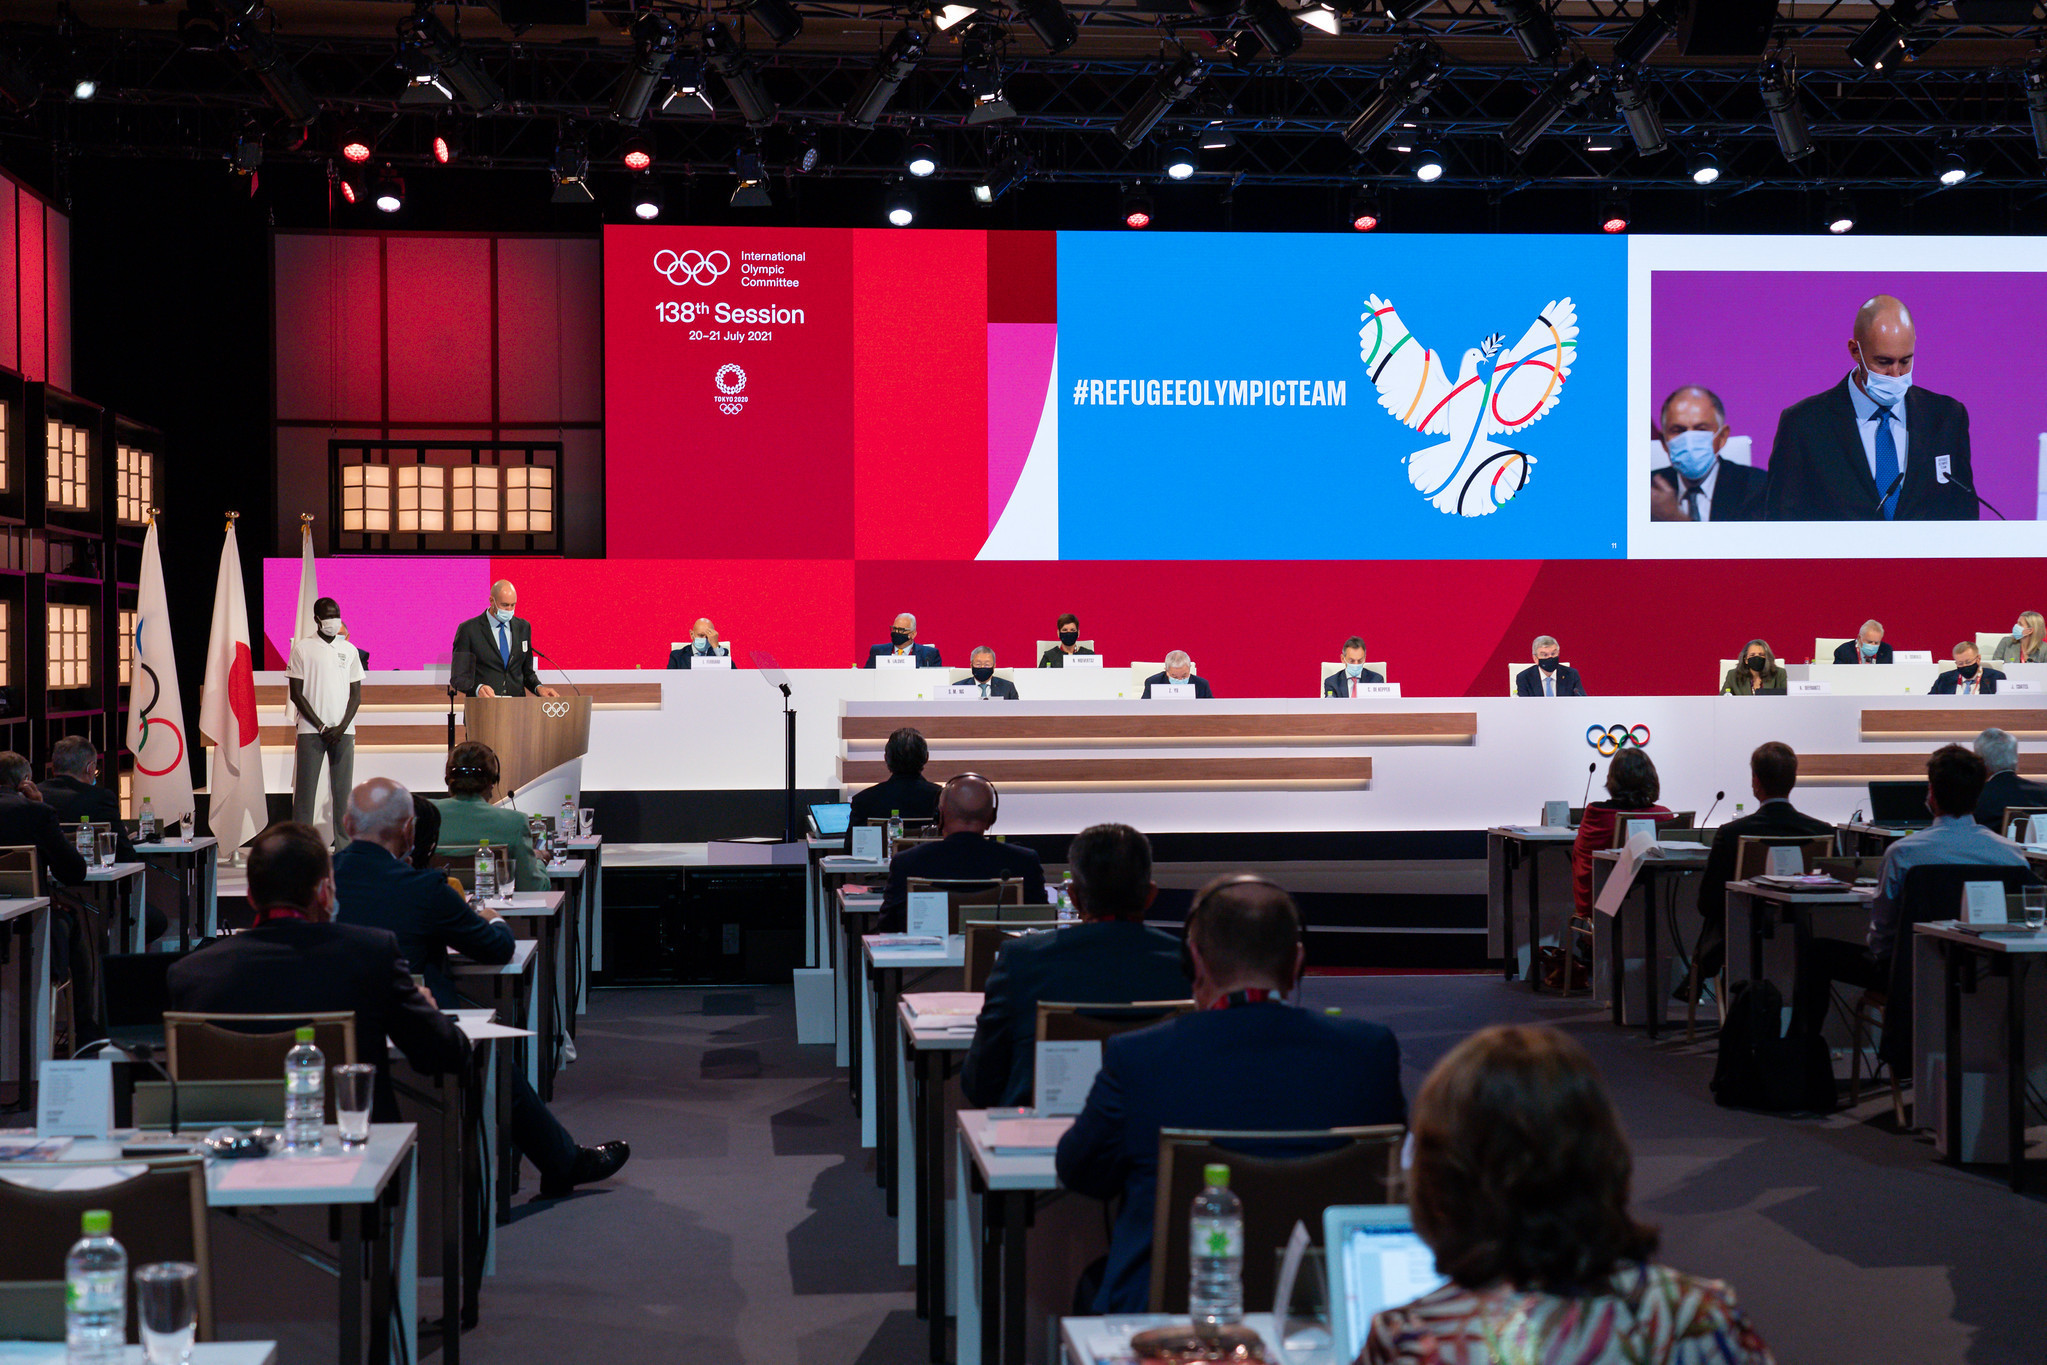 insidethegames is reporting LIVE from the 138th IOC Session in Tokyo